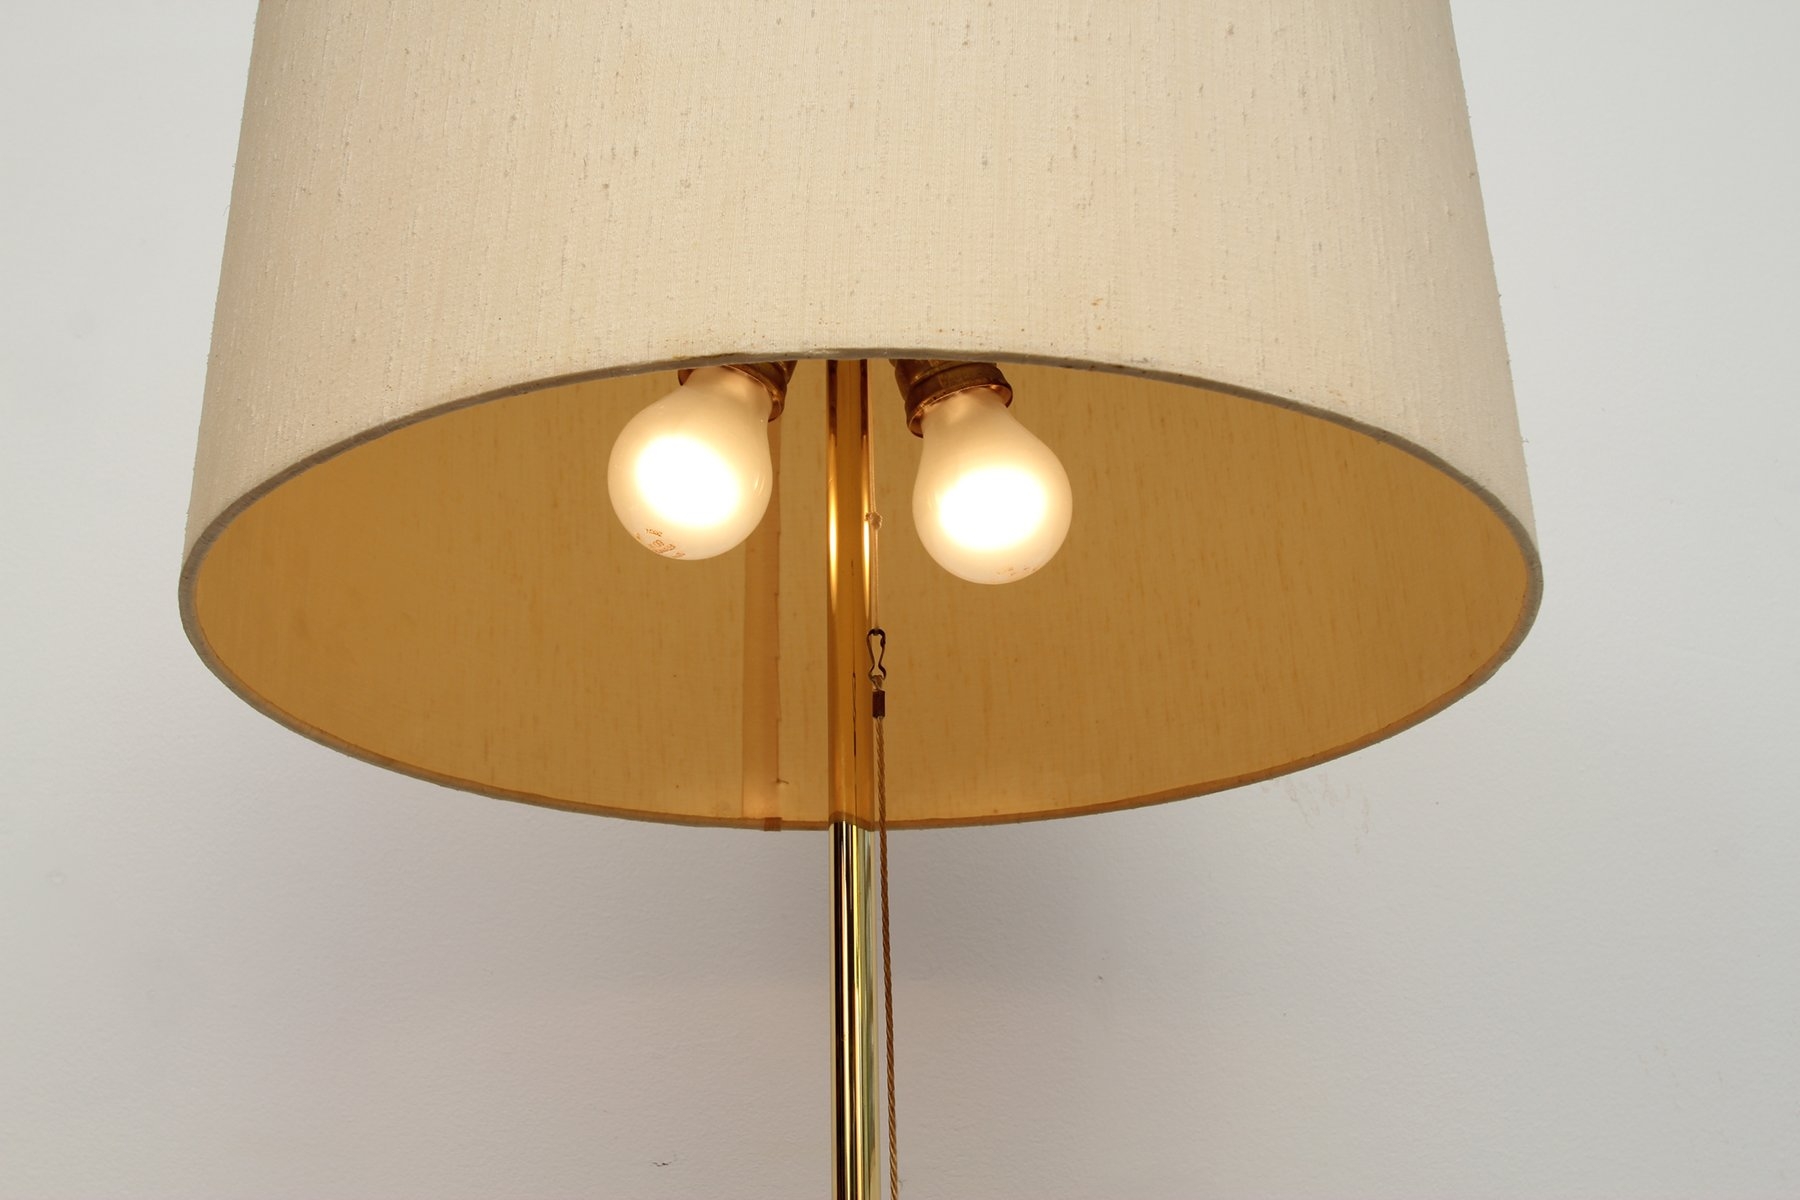 Brass floor lamp 1950s for sale at pamono for 1950 floor lamp